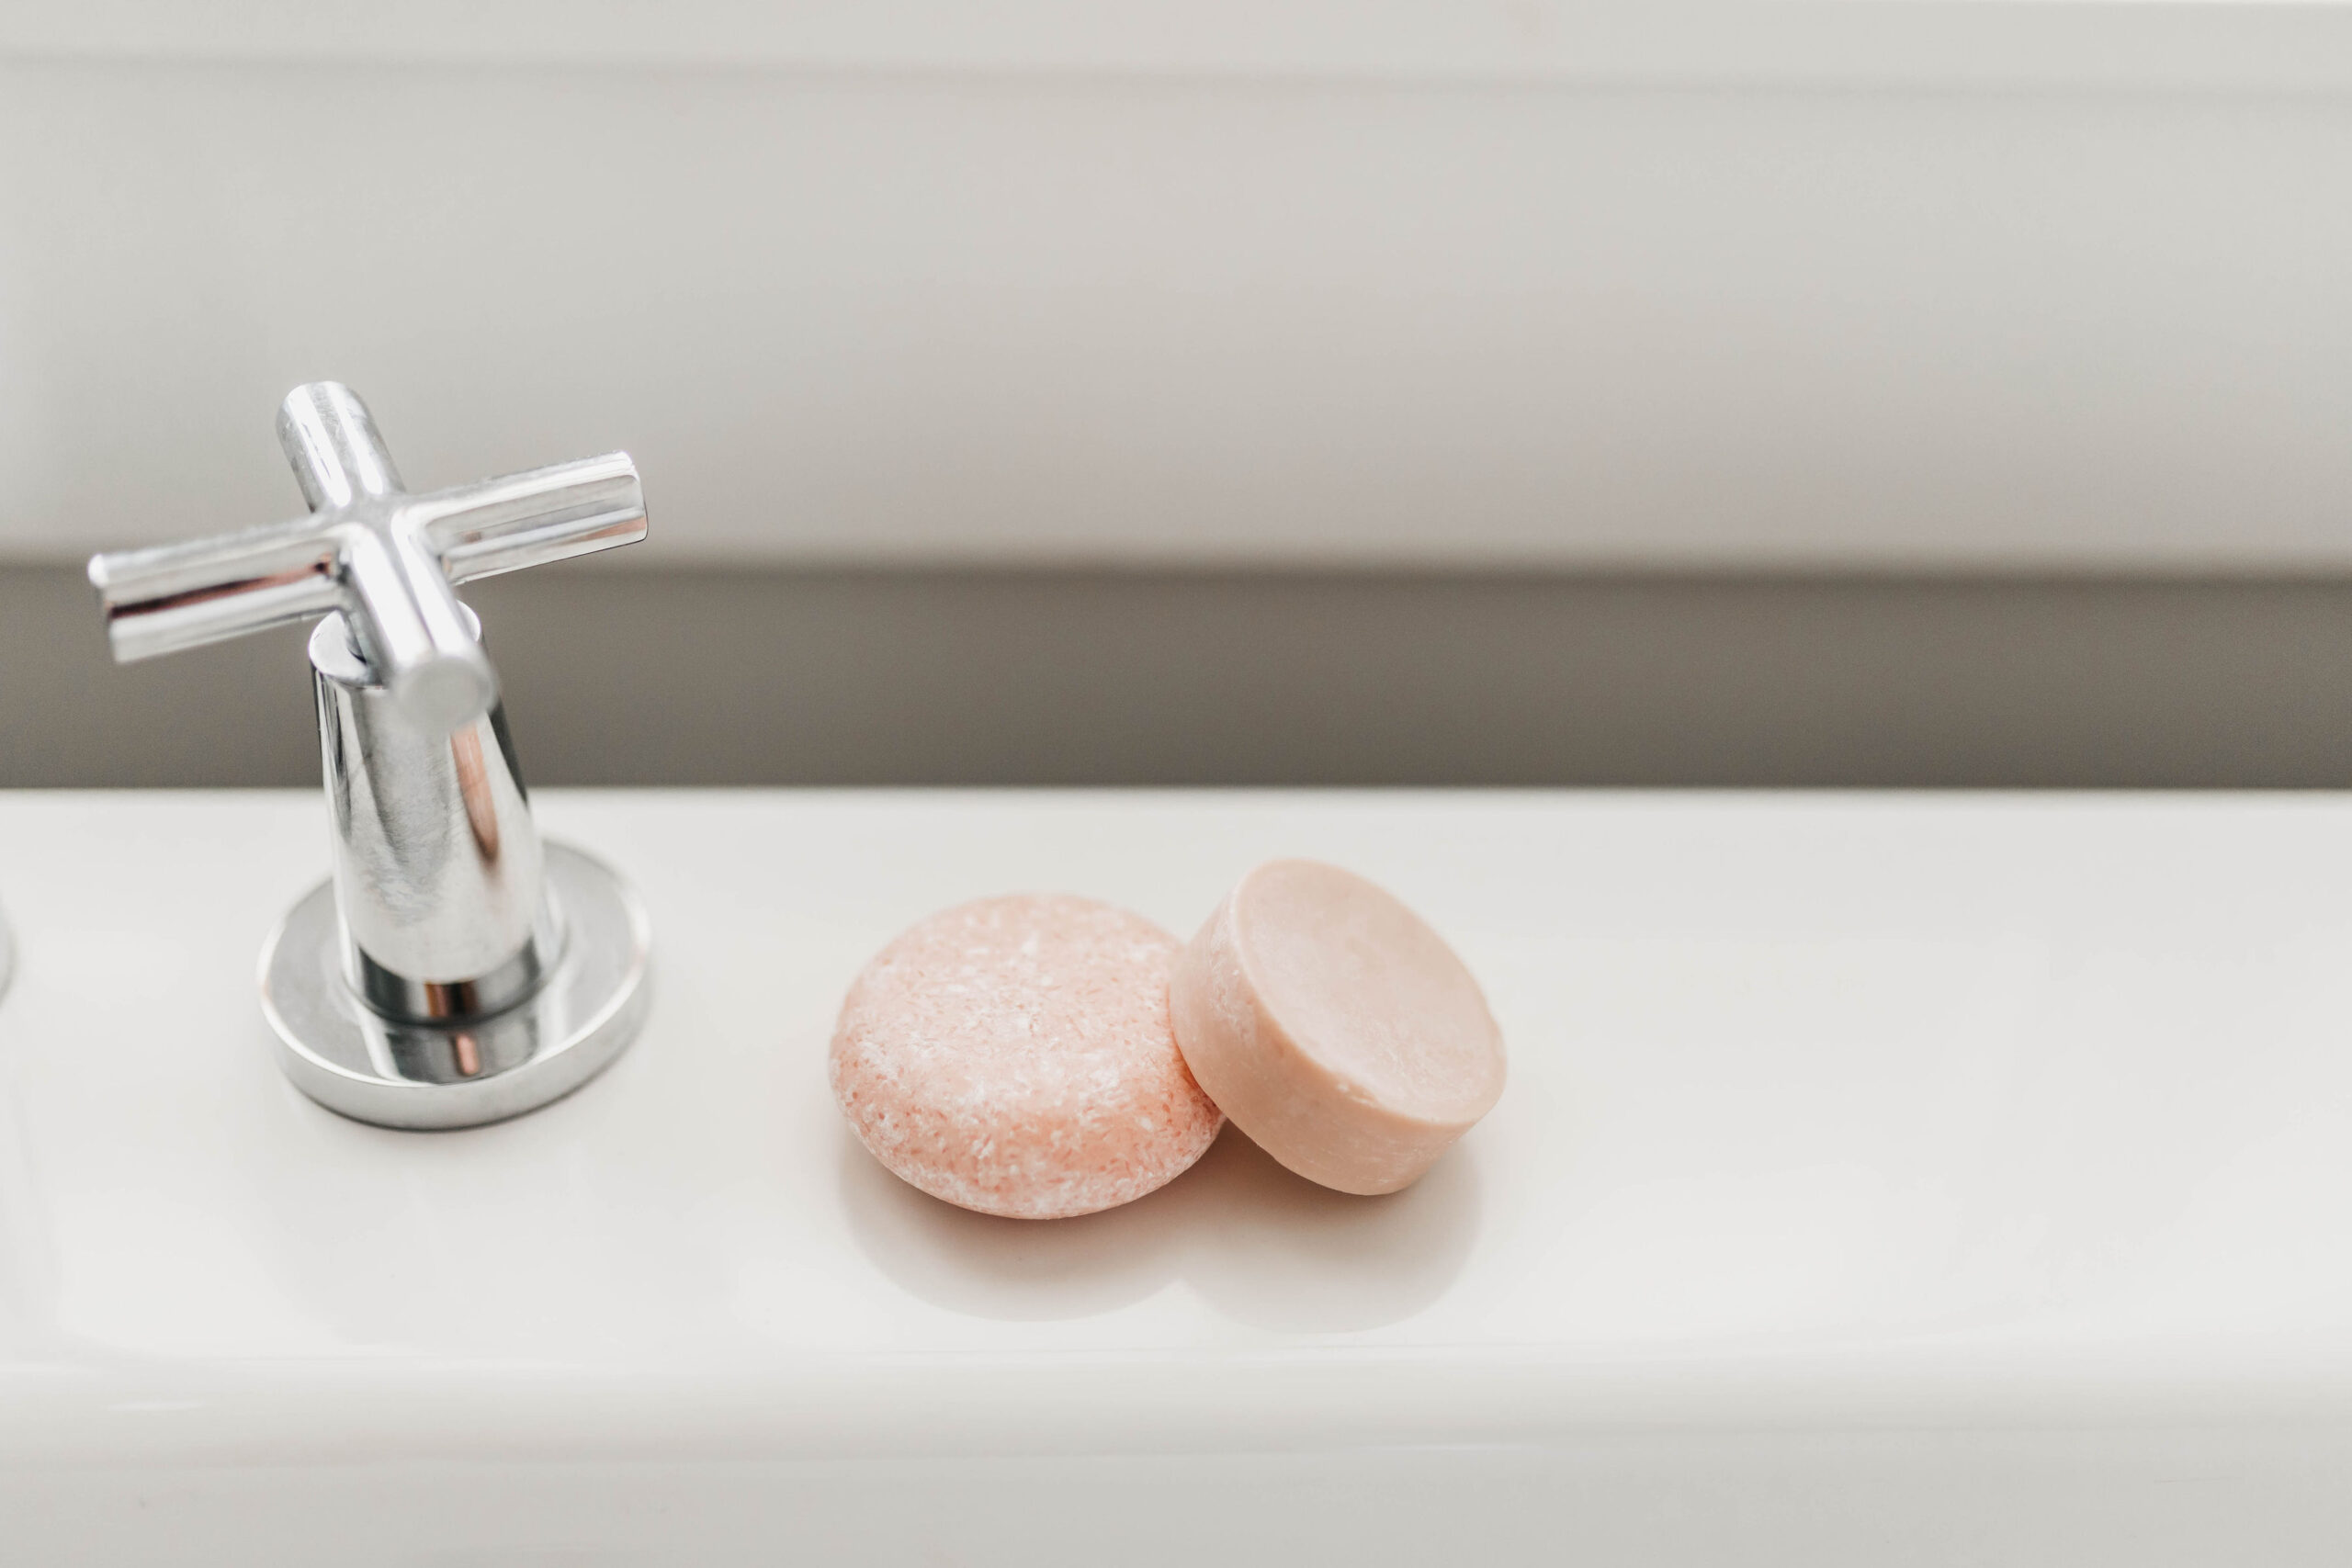 Clean Up Your Shower Routine with Briit Botanicals